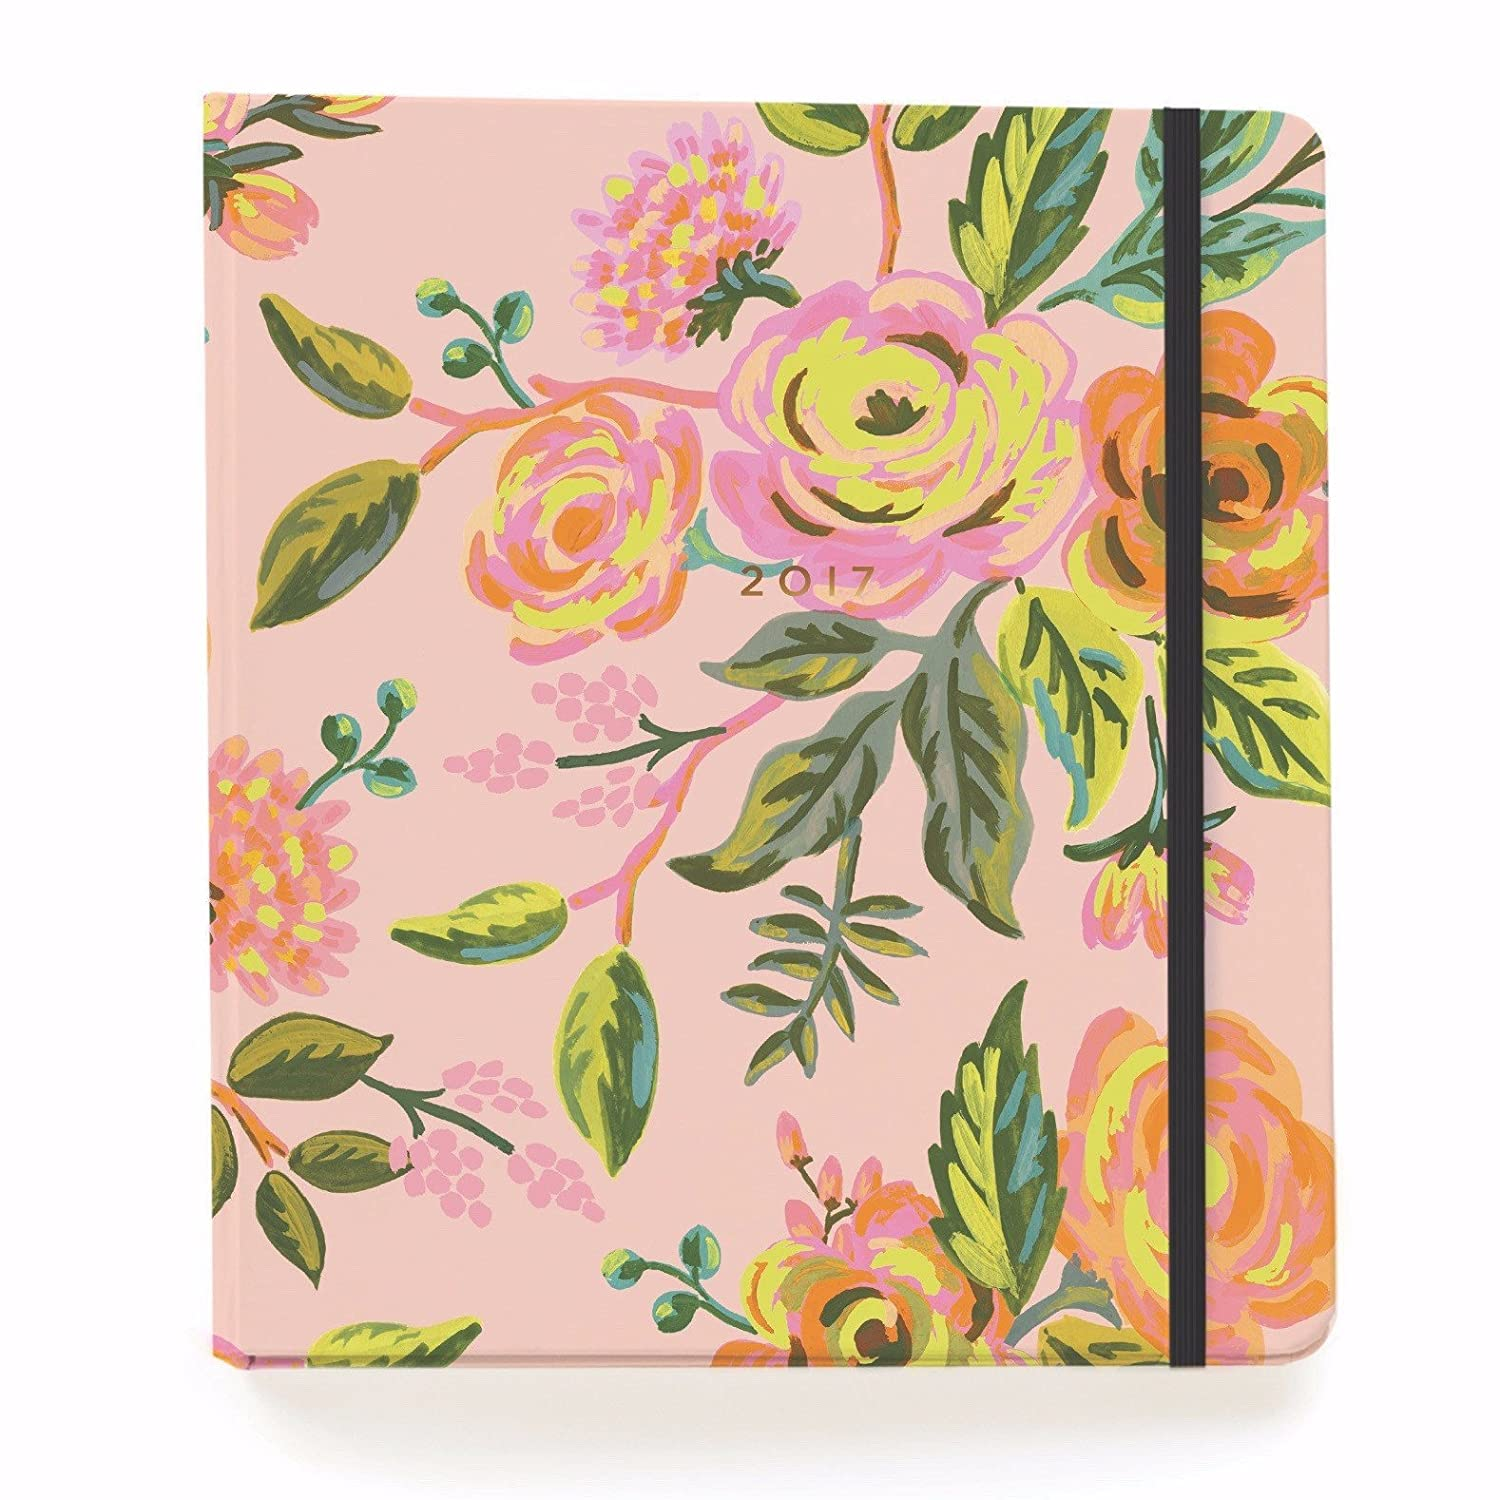 Rifle papel Co. 2017 planificador de jardin de Paris: Amazon ...